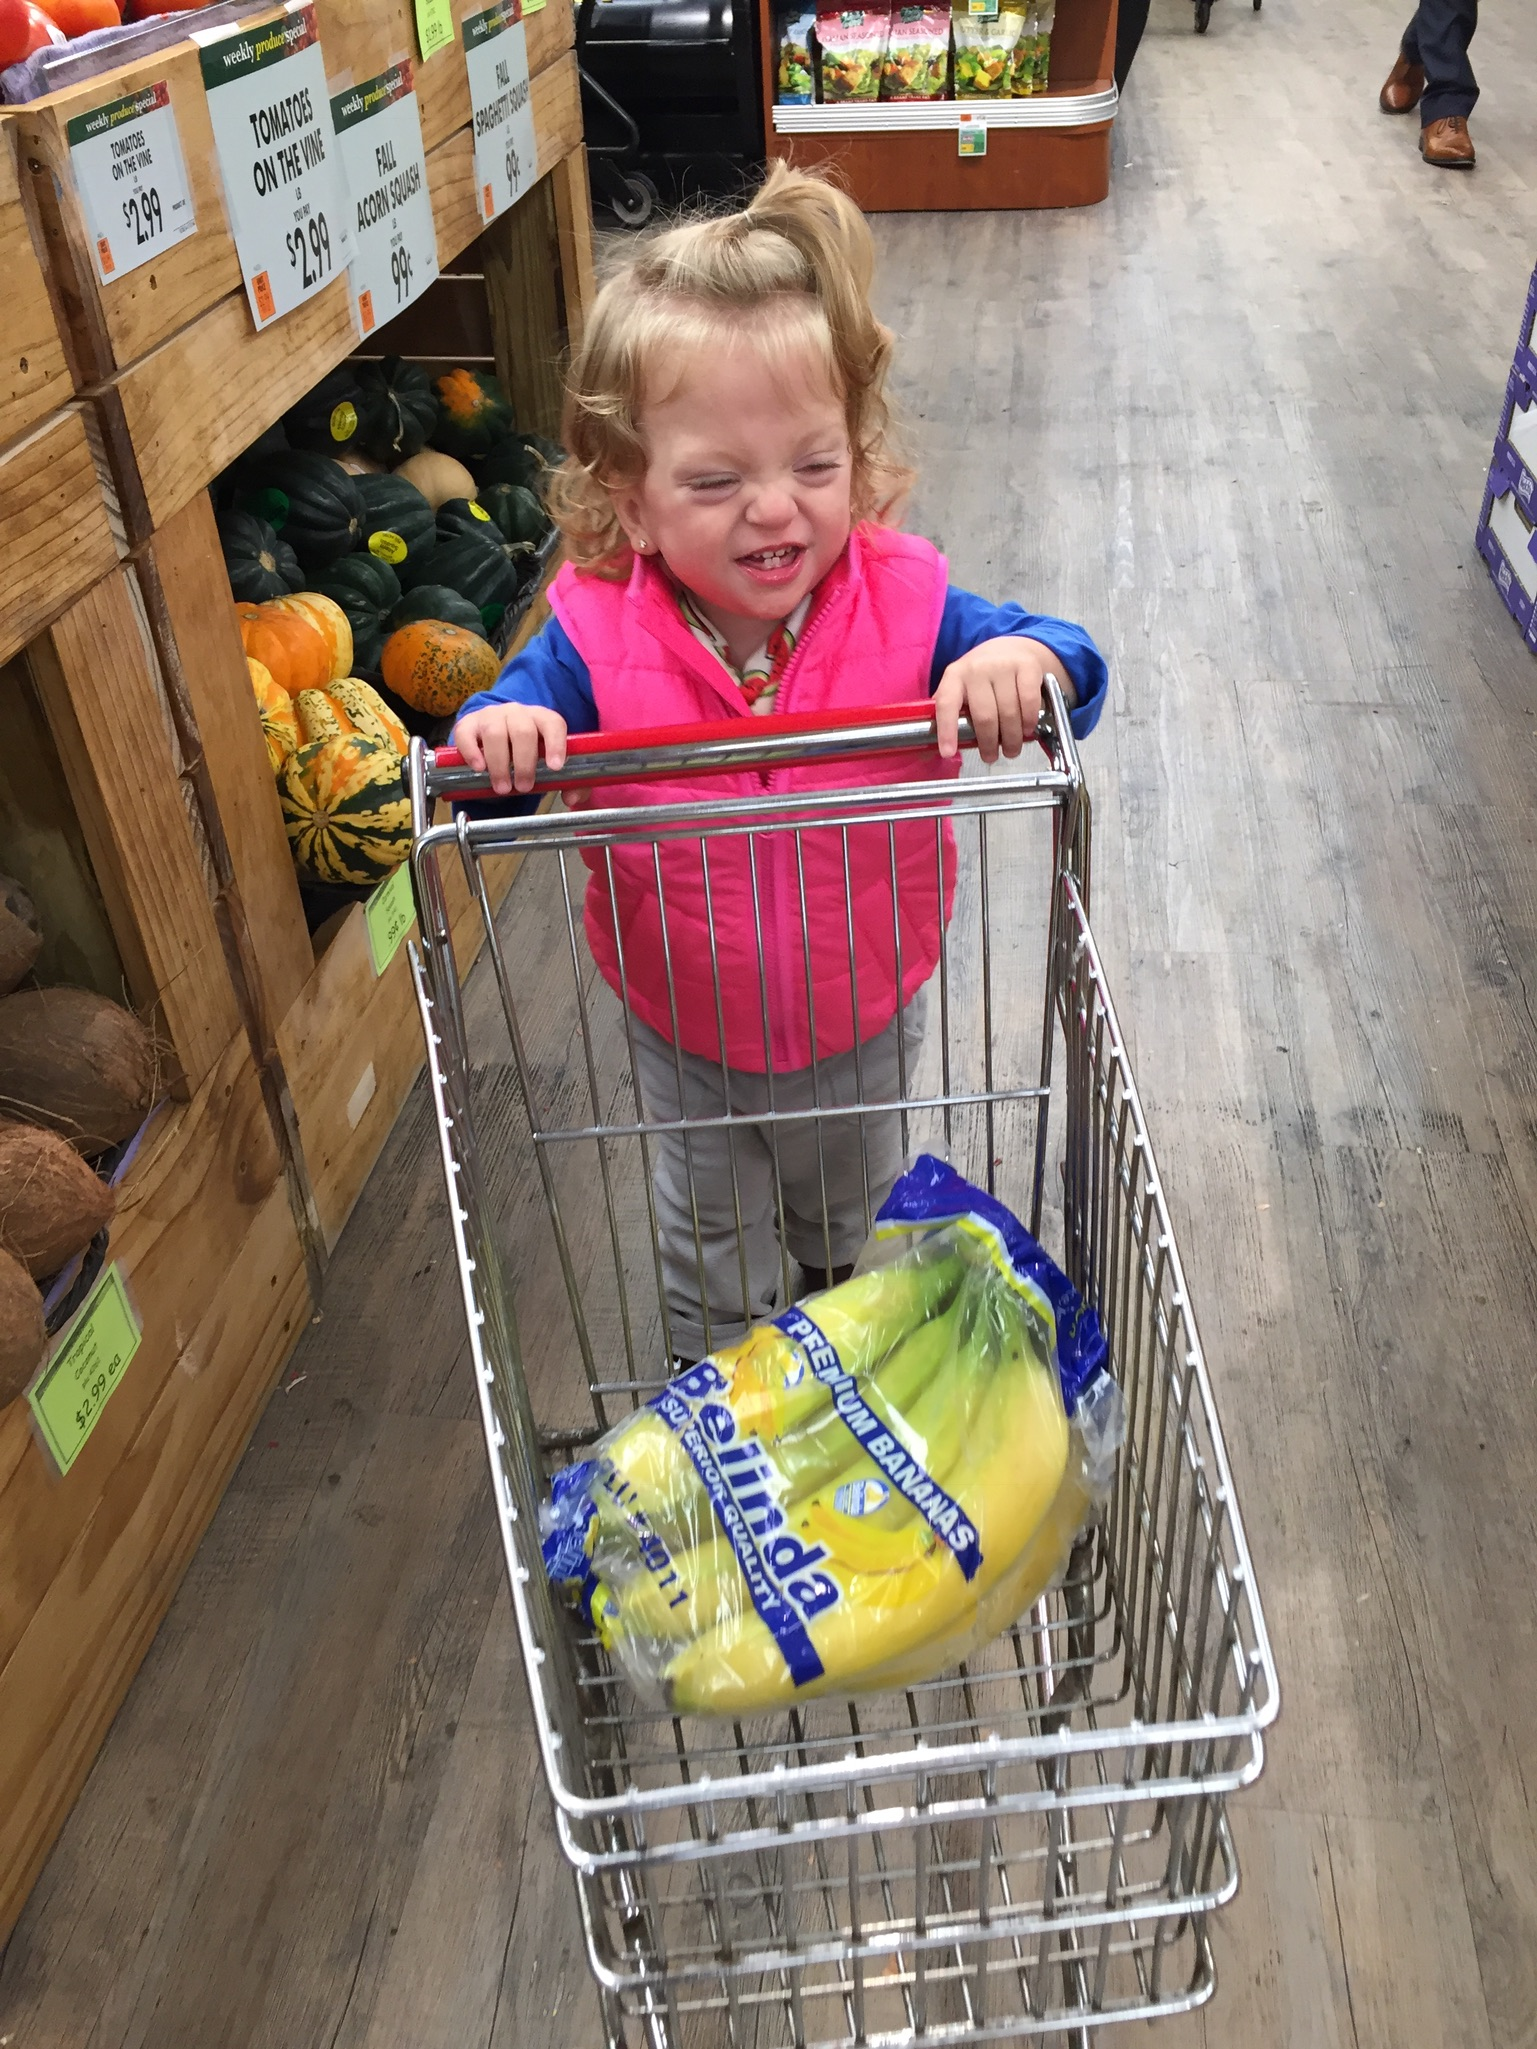 Now that Lucie is getting bigger, we're teaching her to help out. She looooves pushing the carts in the grocery store and won't let anyone help her steer. Look out shoppers!